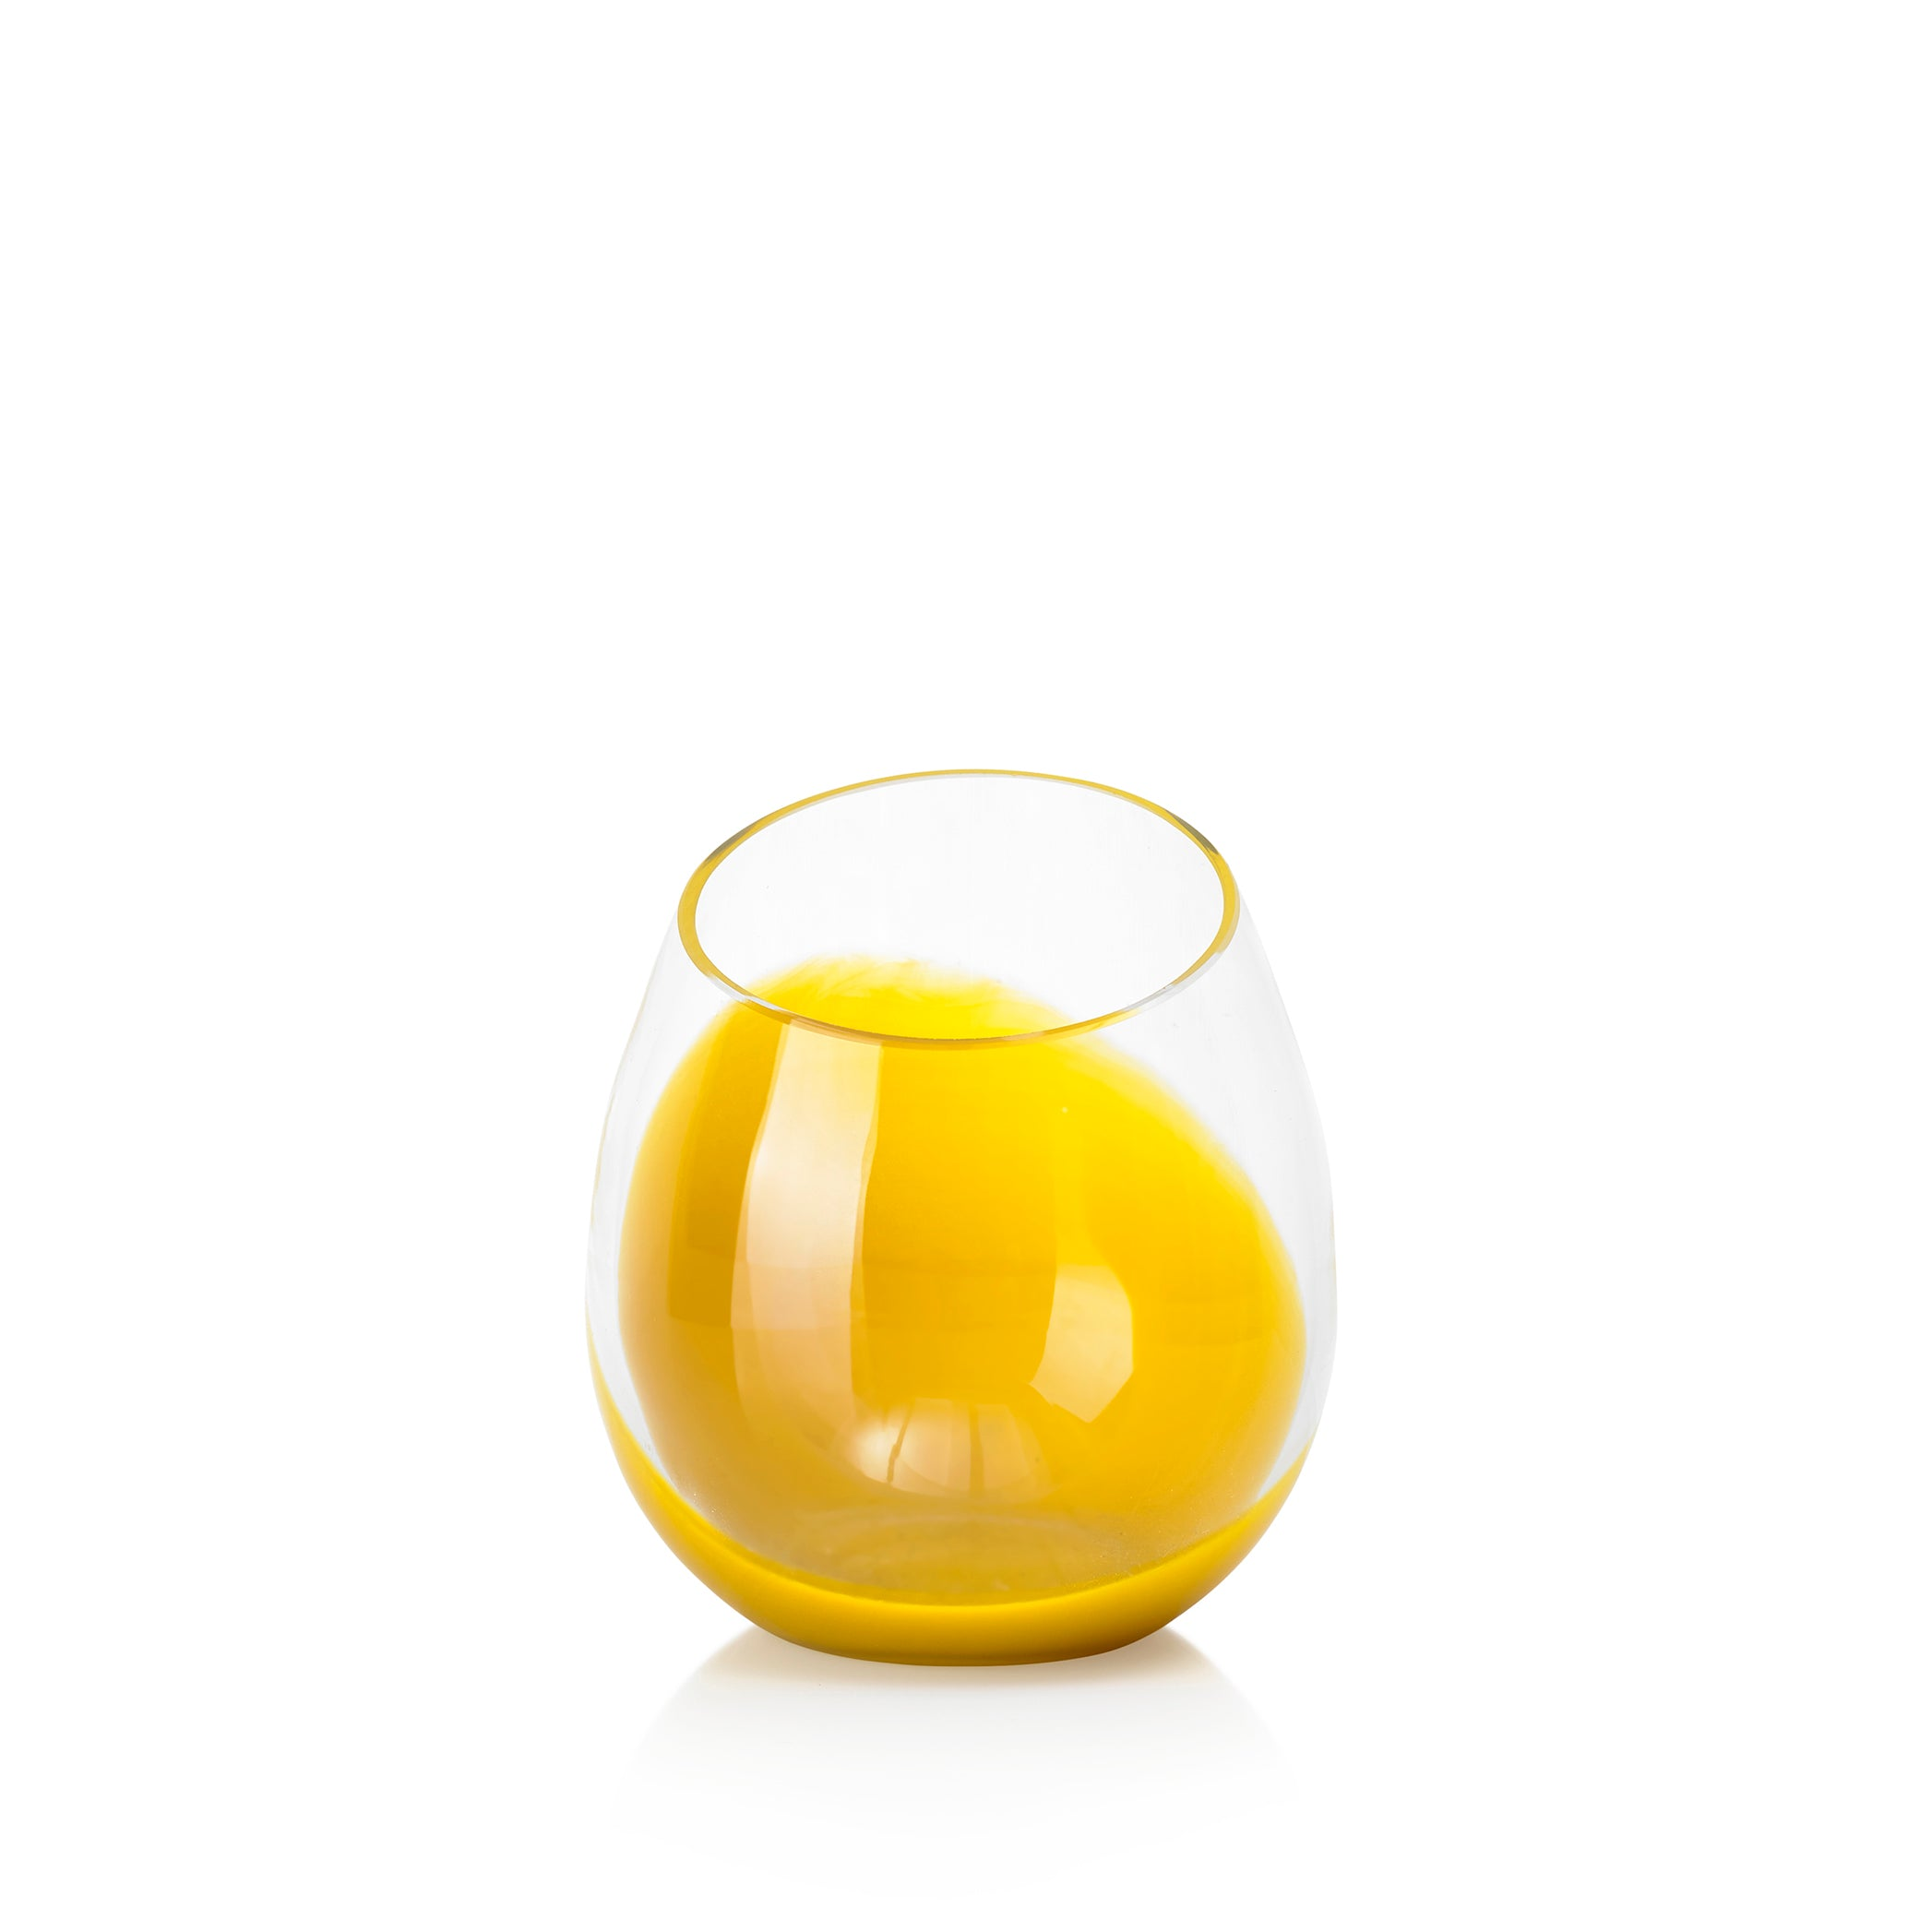 Set of Six Handblown 'Fila' Glass Tumblers, Designed by Karim Rashid in Yellow